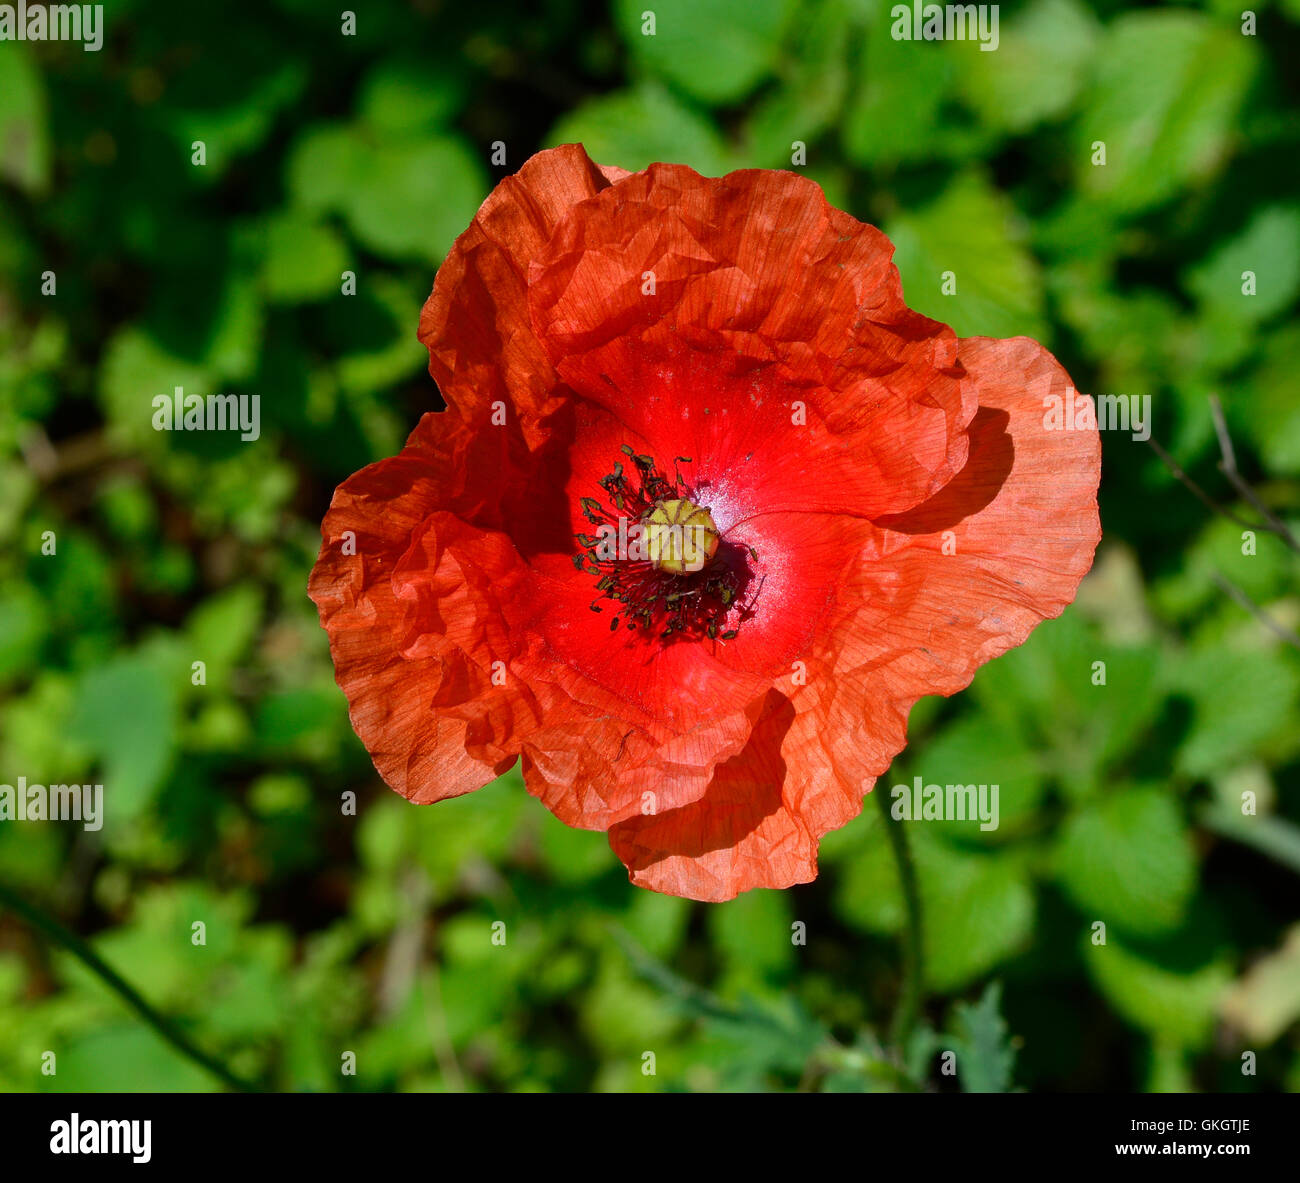 Poppy Like Flower Stock Photos Poppy Like Flower Stock Images Alamy